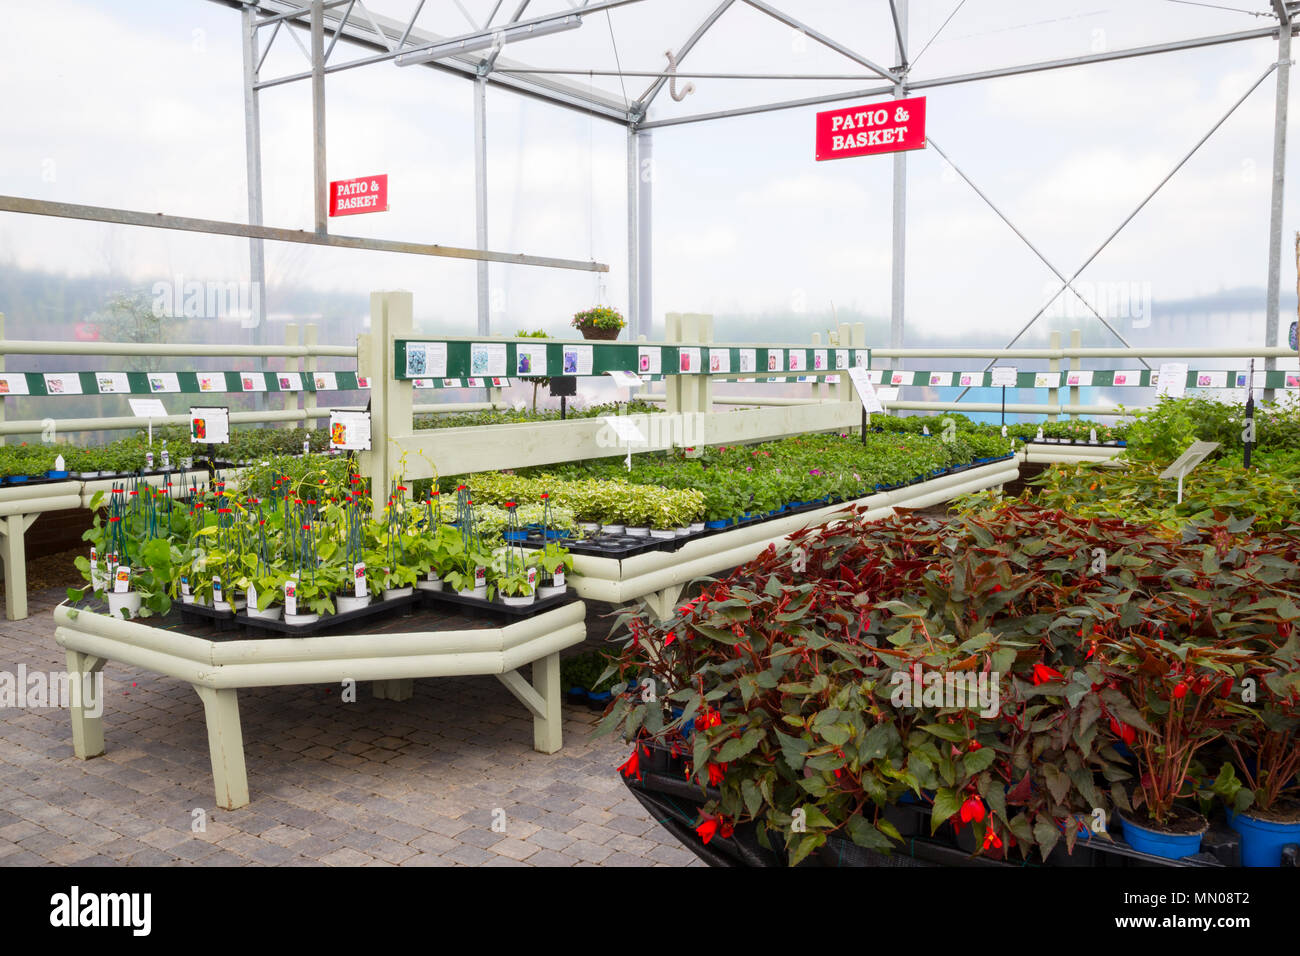 Overview Of A Garden Centre Greenhouse With A Variety Of ...